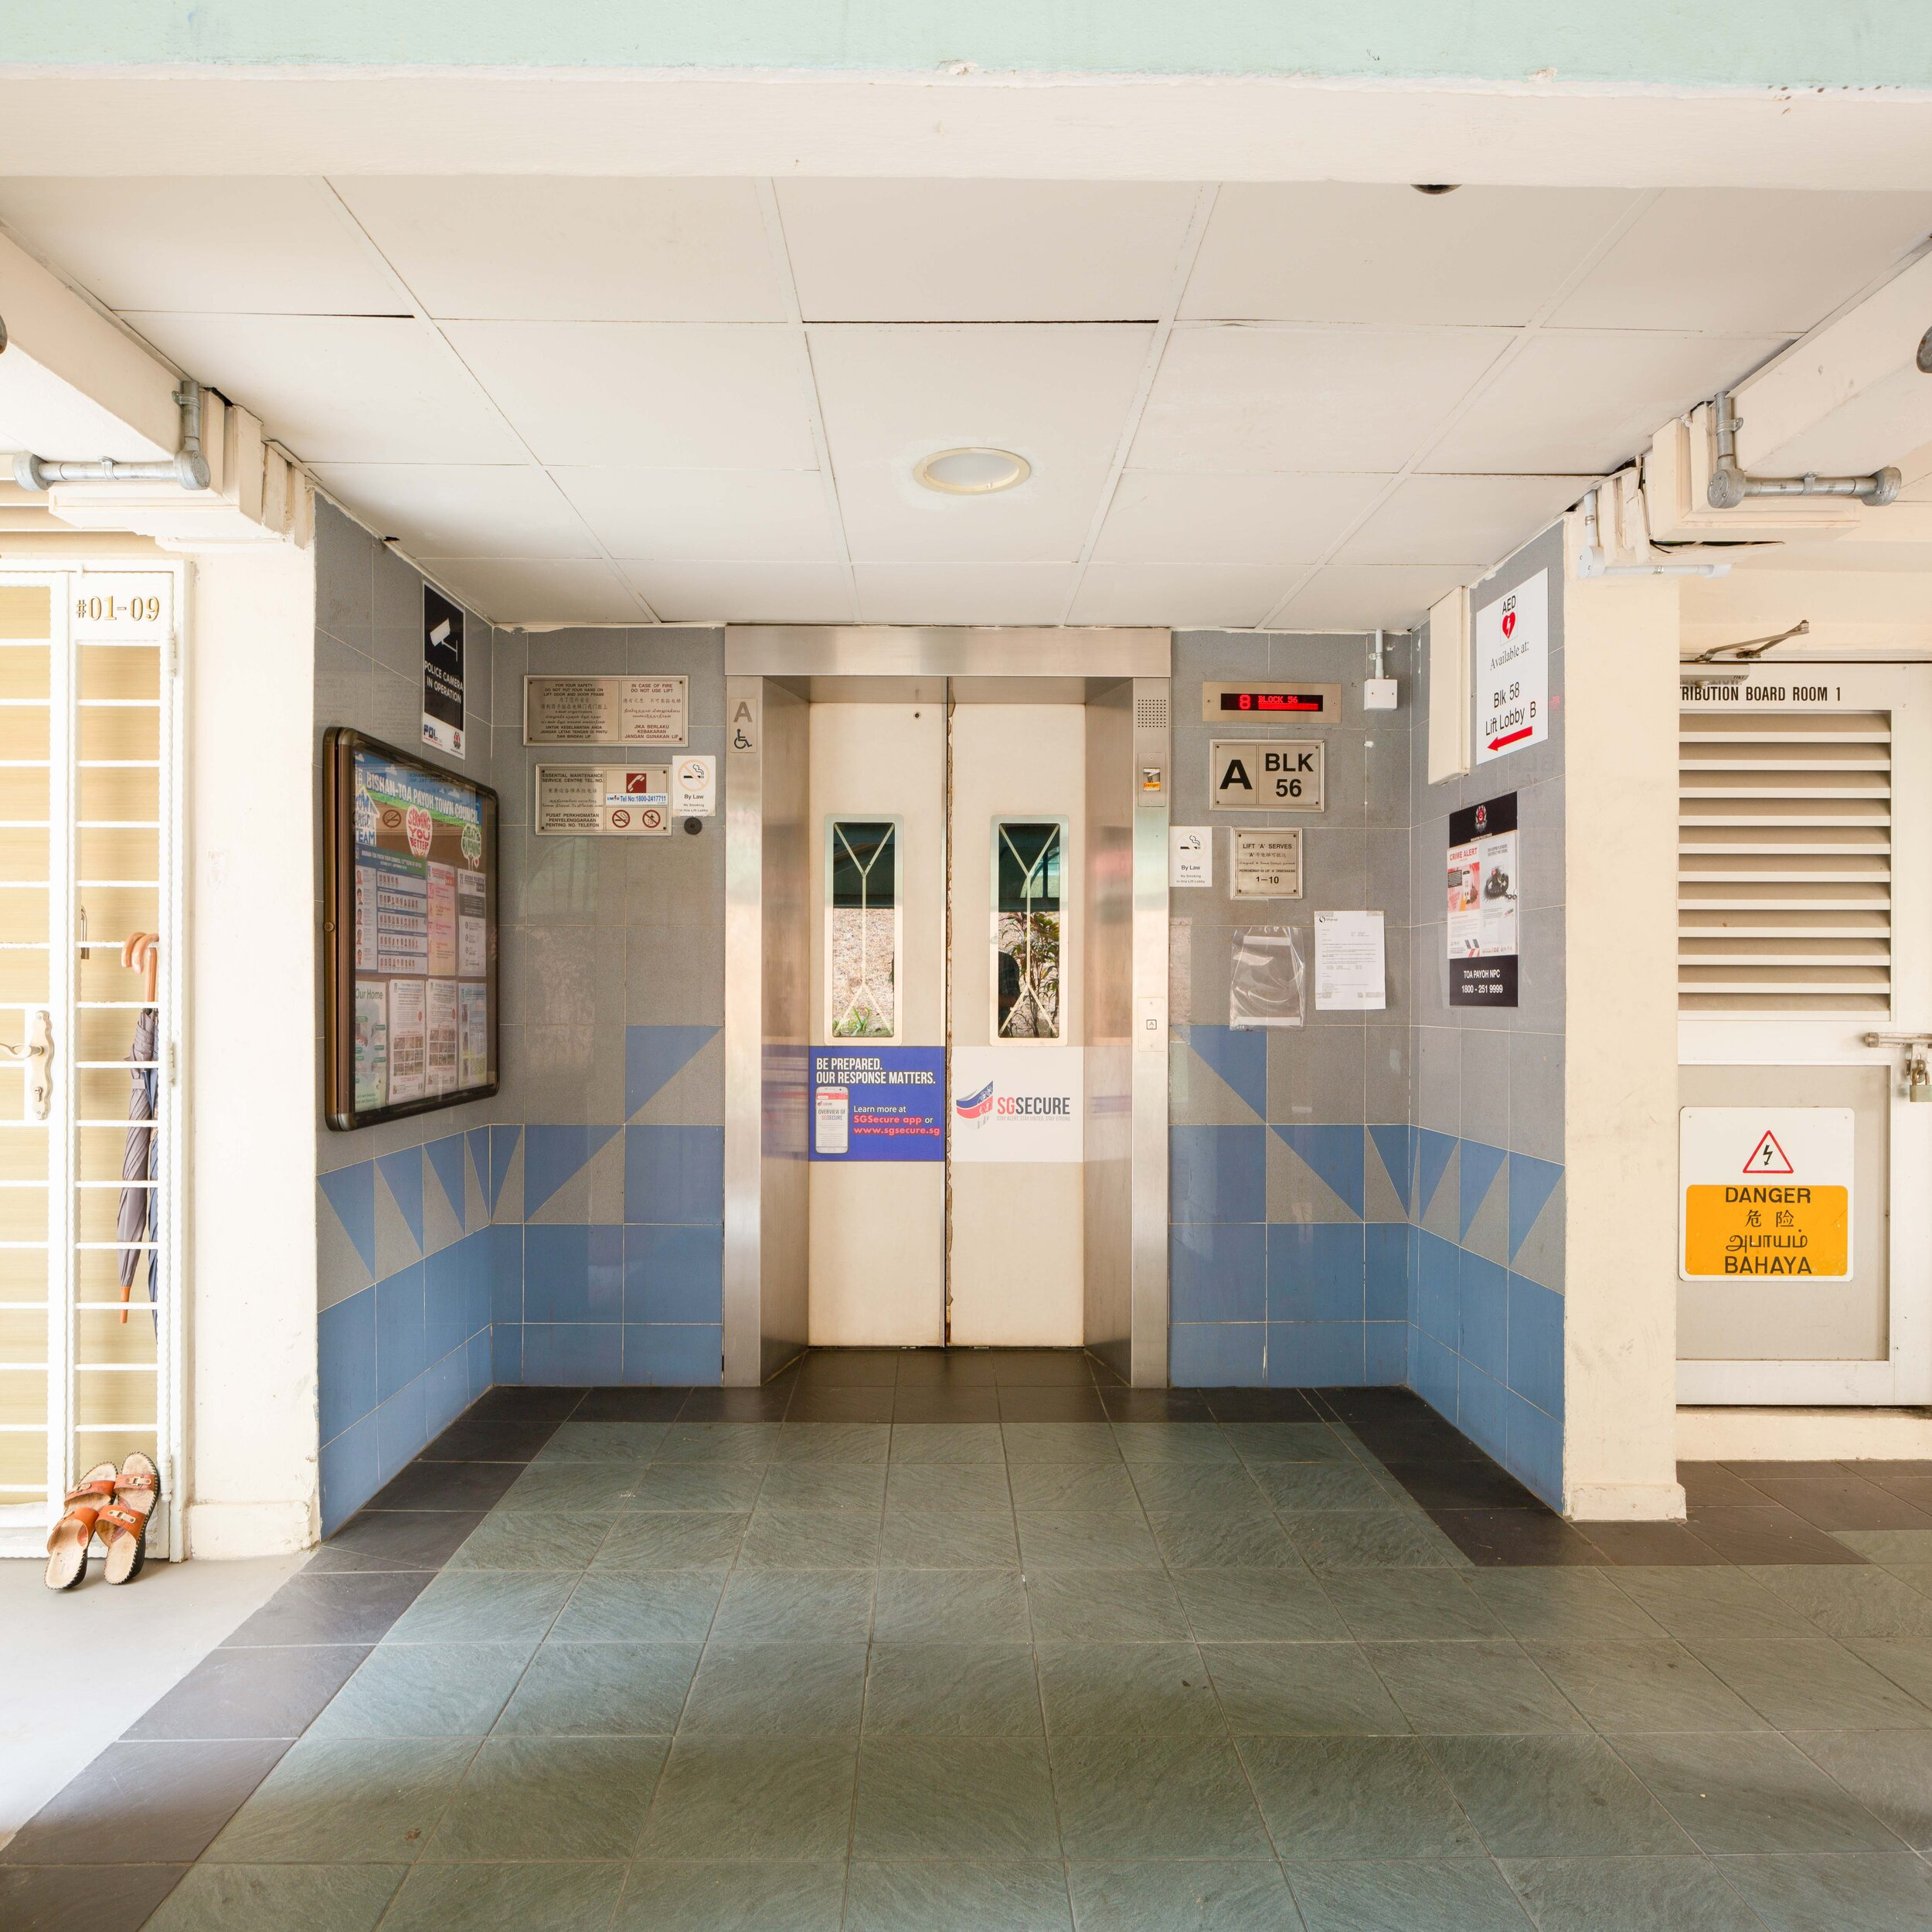 56 Lorong 4 Toa Payoh 190918 117, image by Andrew Campbell Nelson.jpg